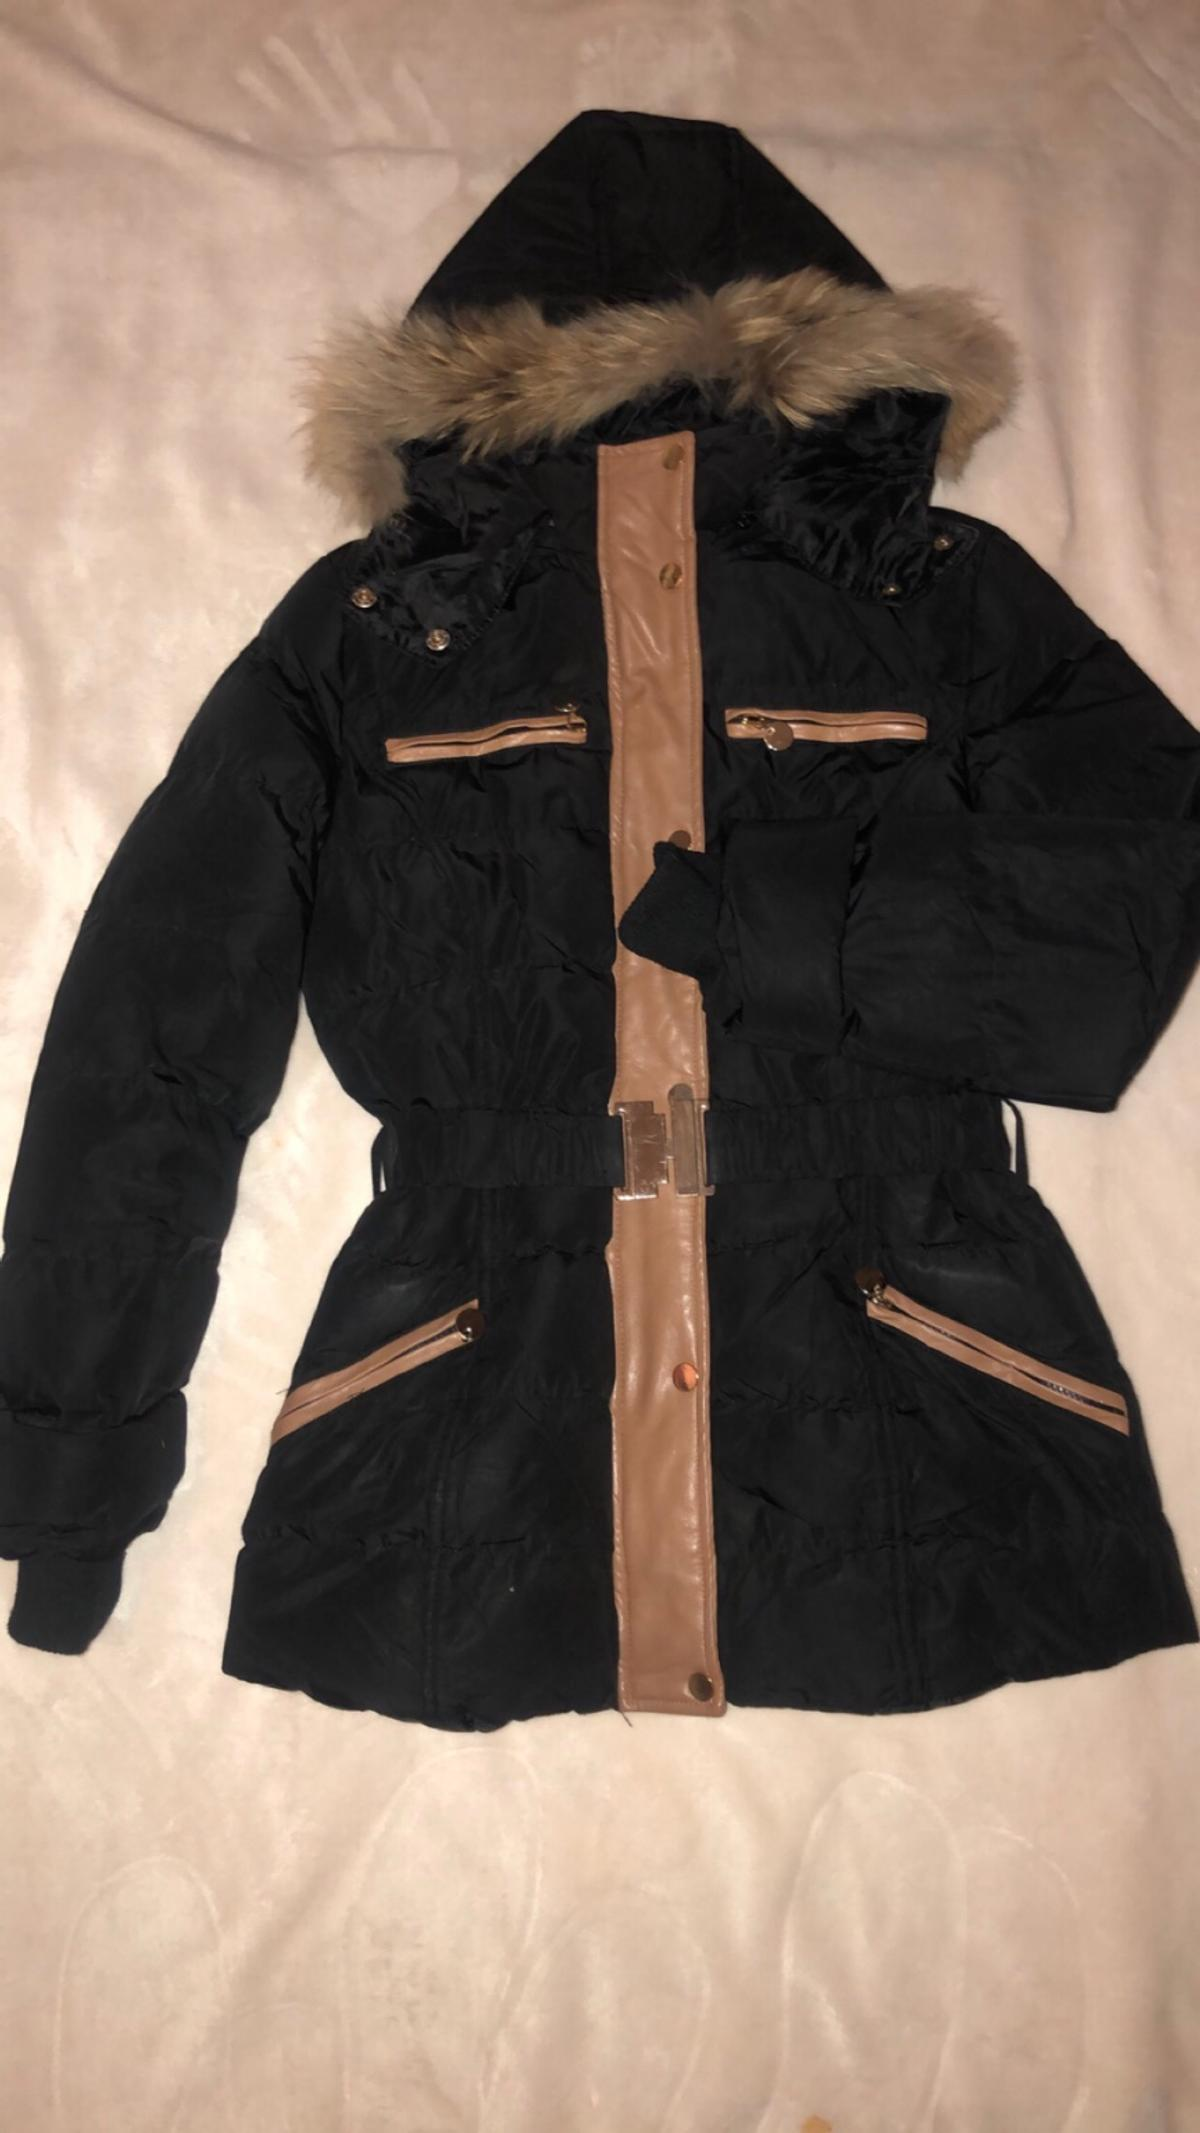 Black and brown coat with belt and fur hood, size 6/8, bought for £70